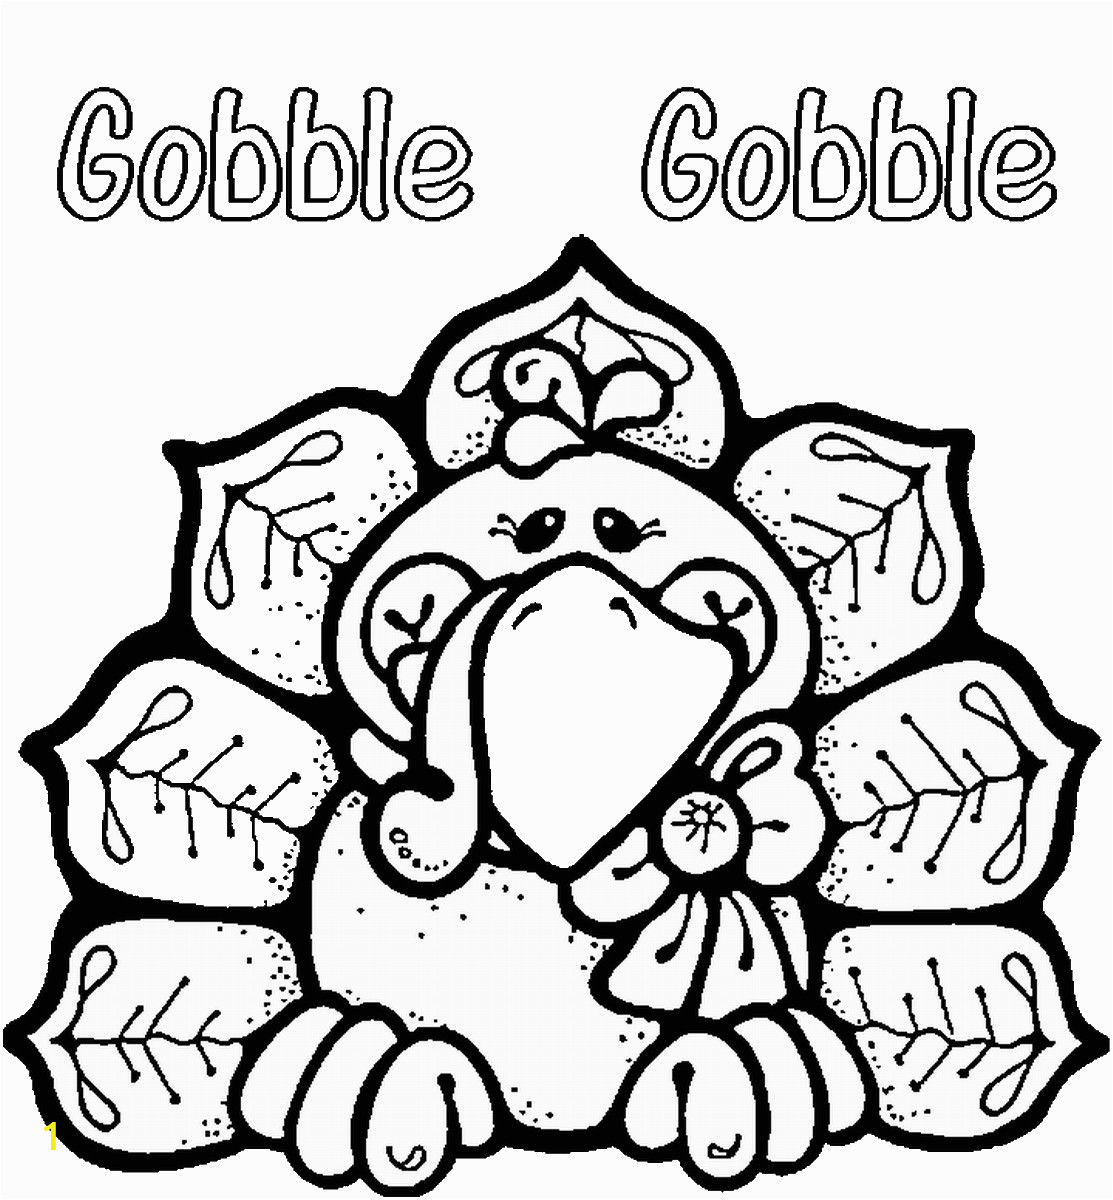 thanksgiving coloring pages for adults with numbers at drawings boston market message food sides happy whens turkey day funny peanuts traditional menu